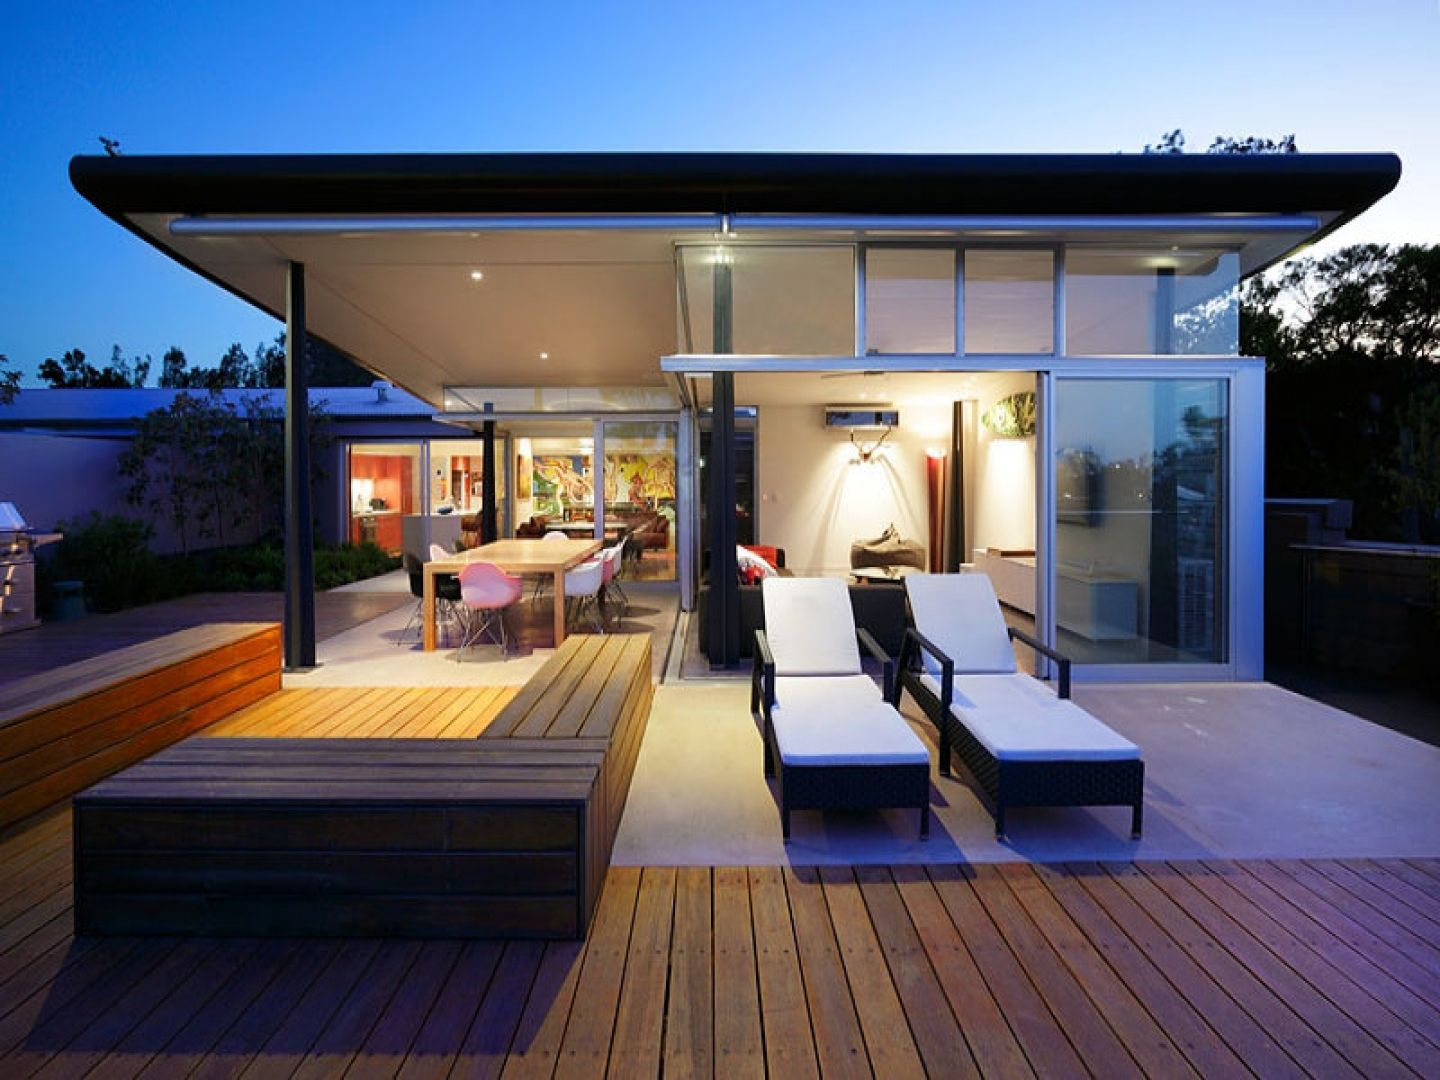 Architectural Designs For Modern Houses | Office designs, Modern ...